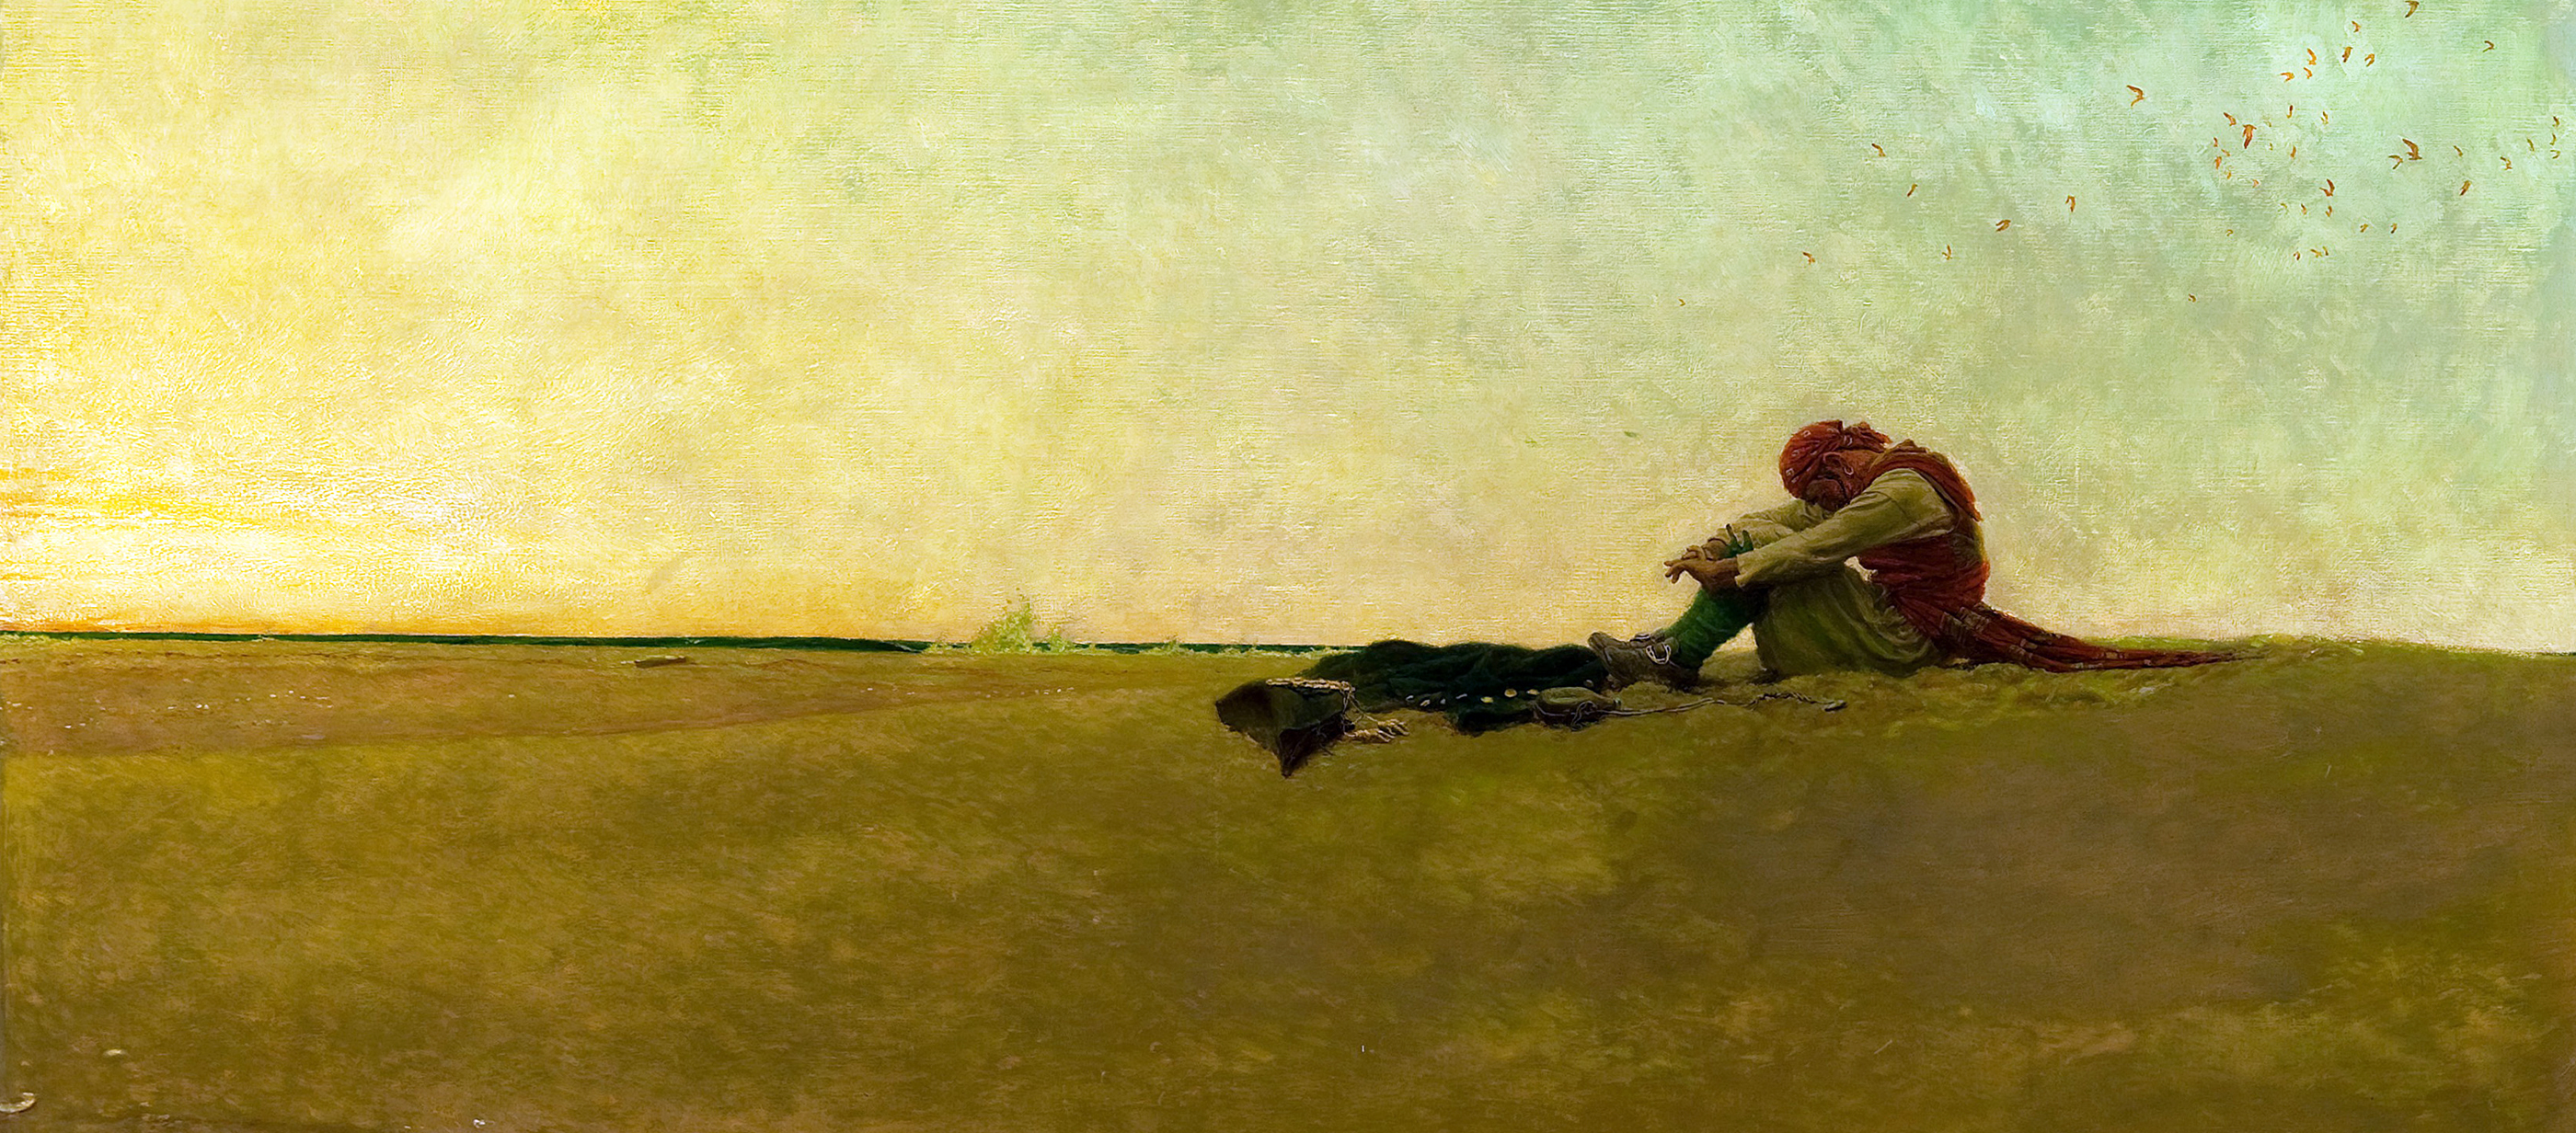 Marooned, by Howard Pyle, 1909.